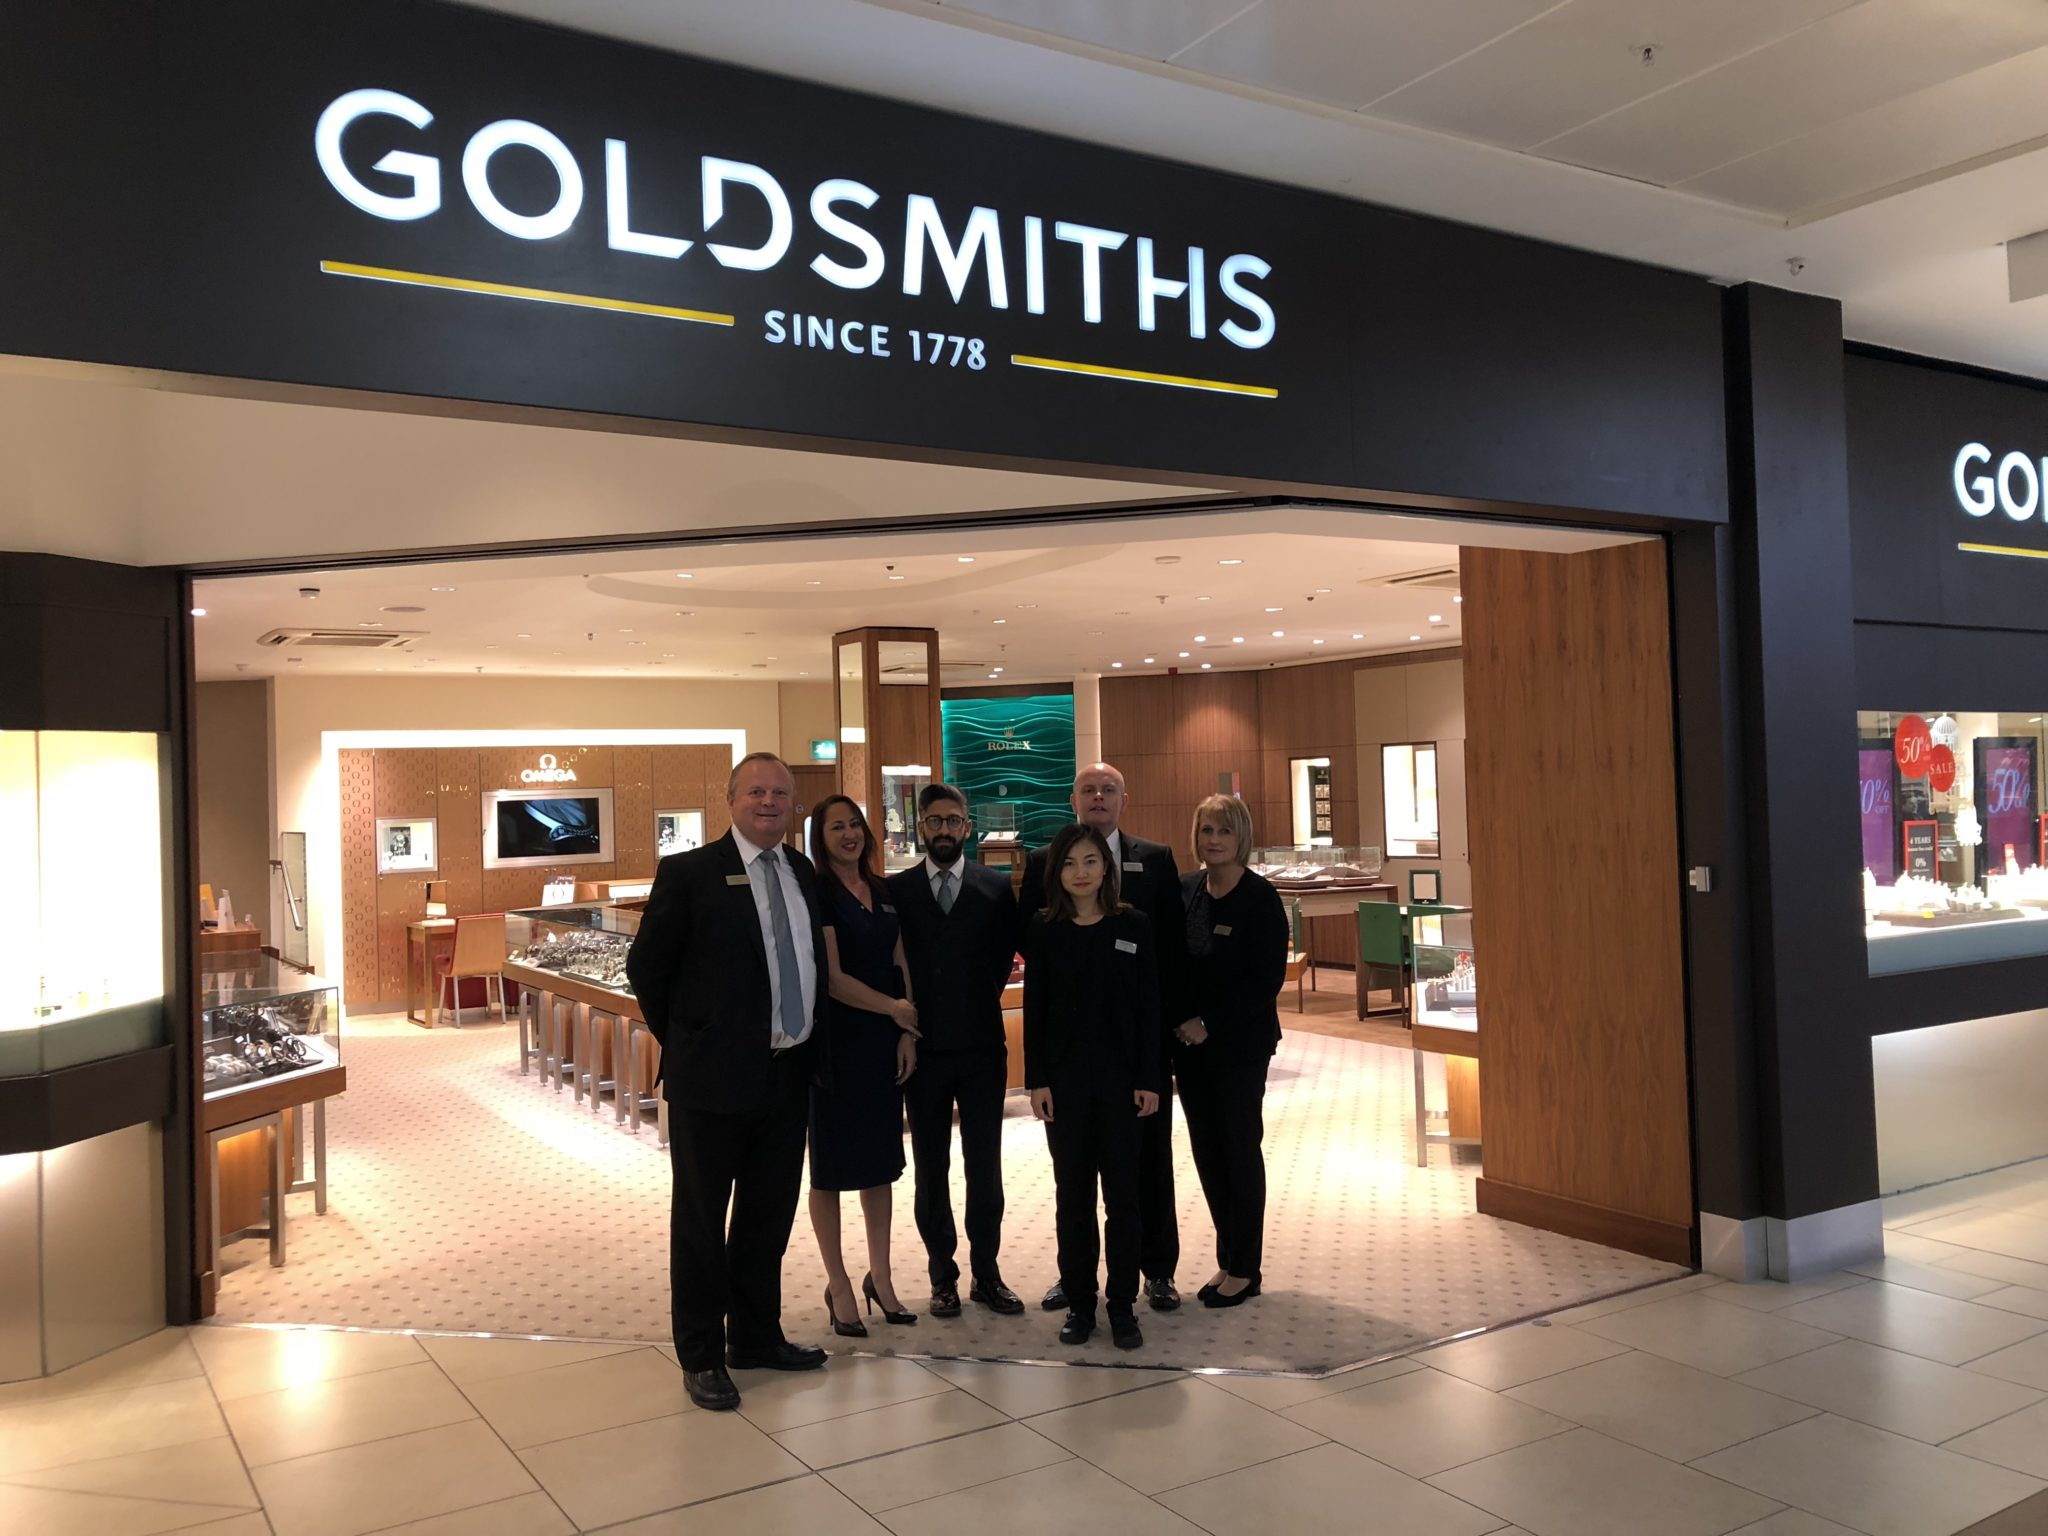 Goldsmiths jewellers has reopened its intu Eldon Square showroom